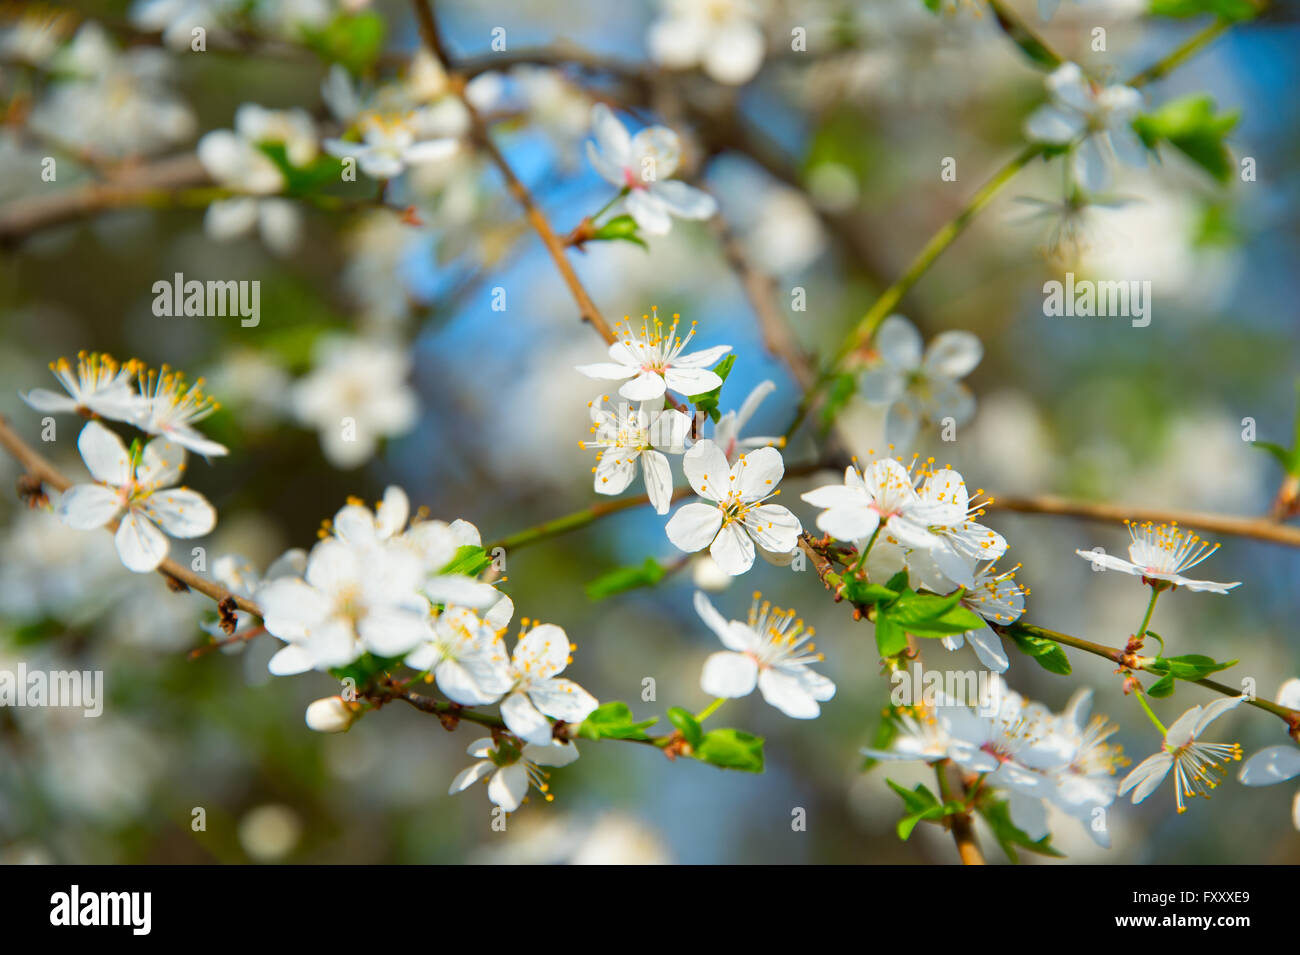 Blossom flowers of apricot tree in a spring season stock photo blossom flowers of apricot tree in a spring season mightylinksfo